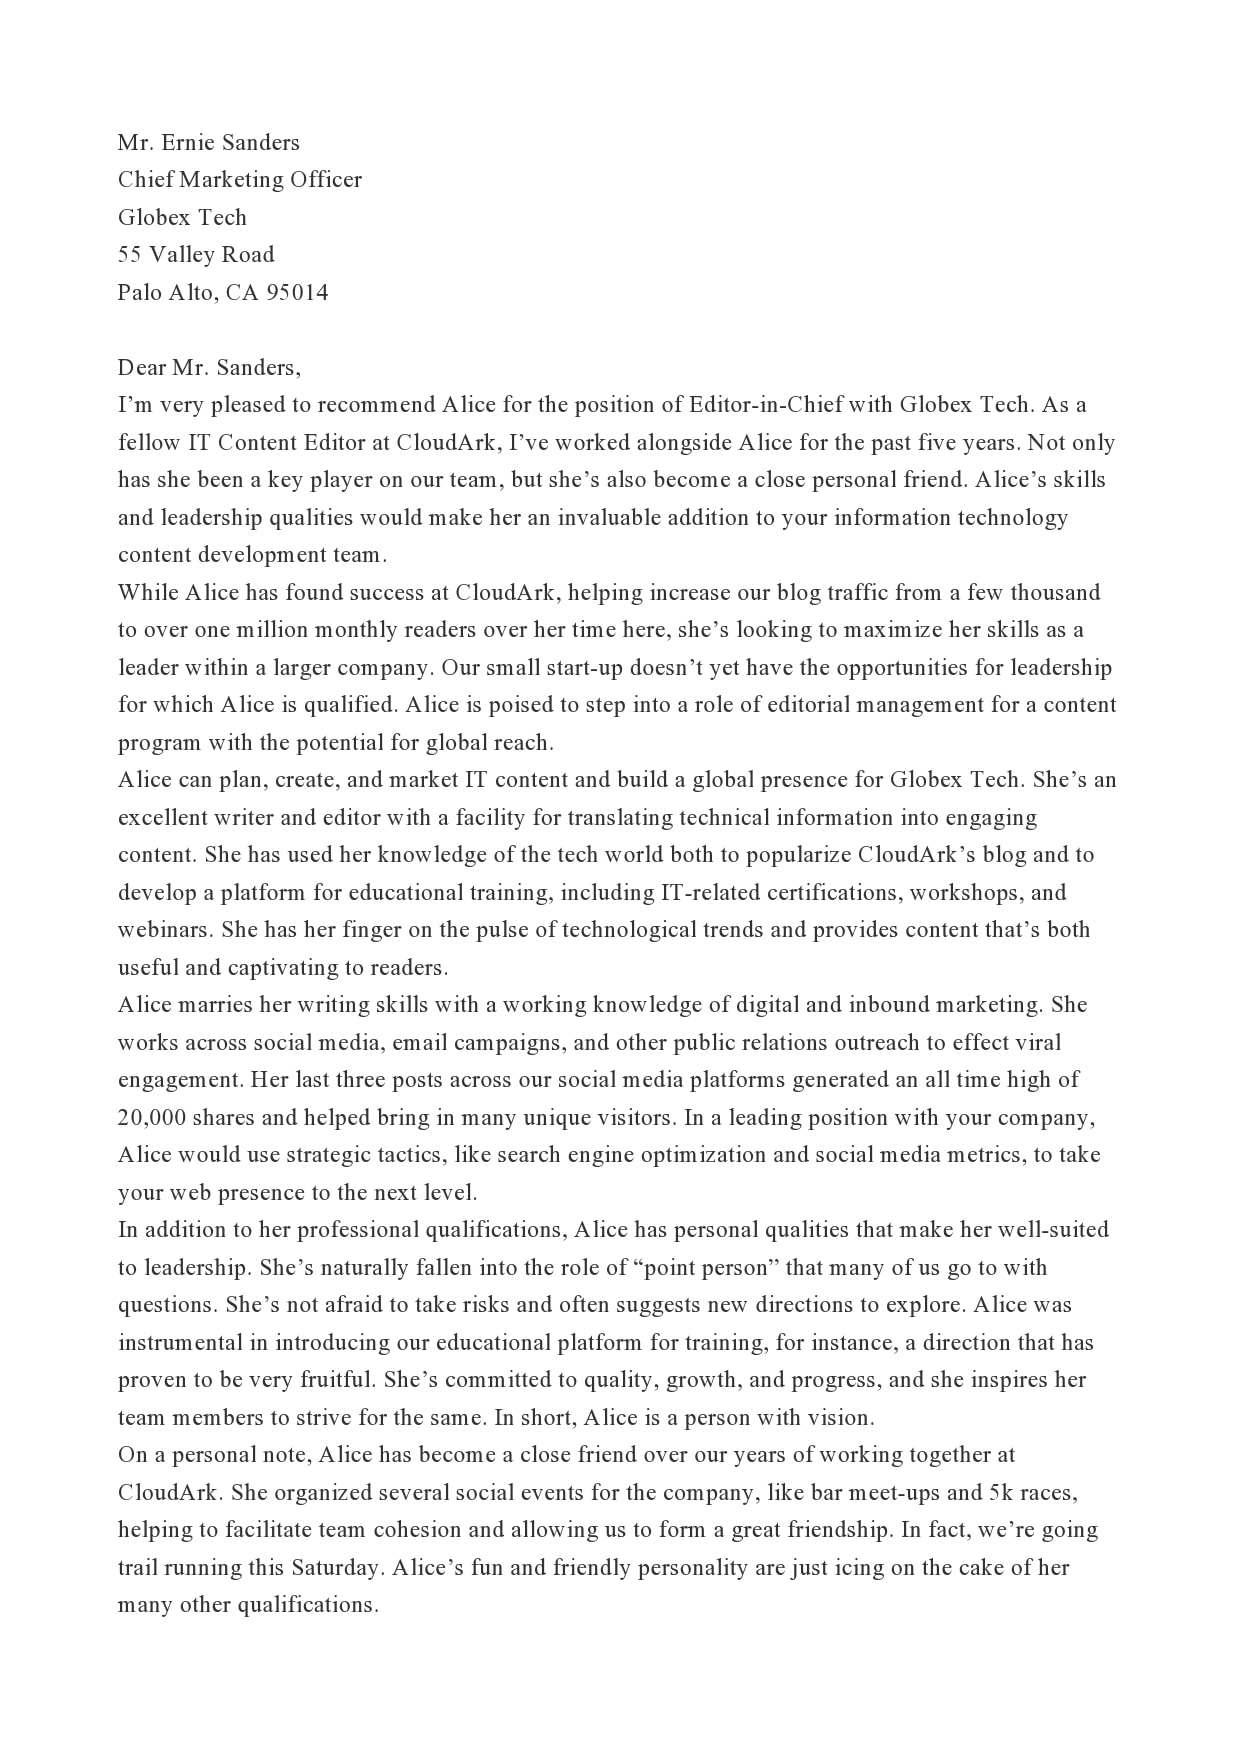 letter of recommendation for coworker 07